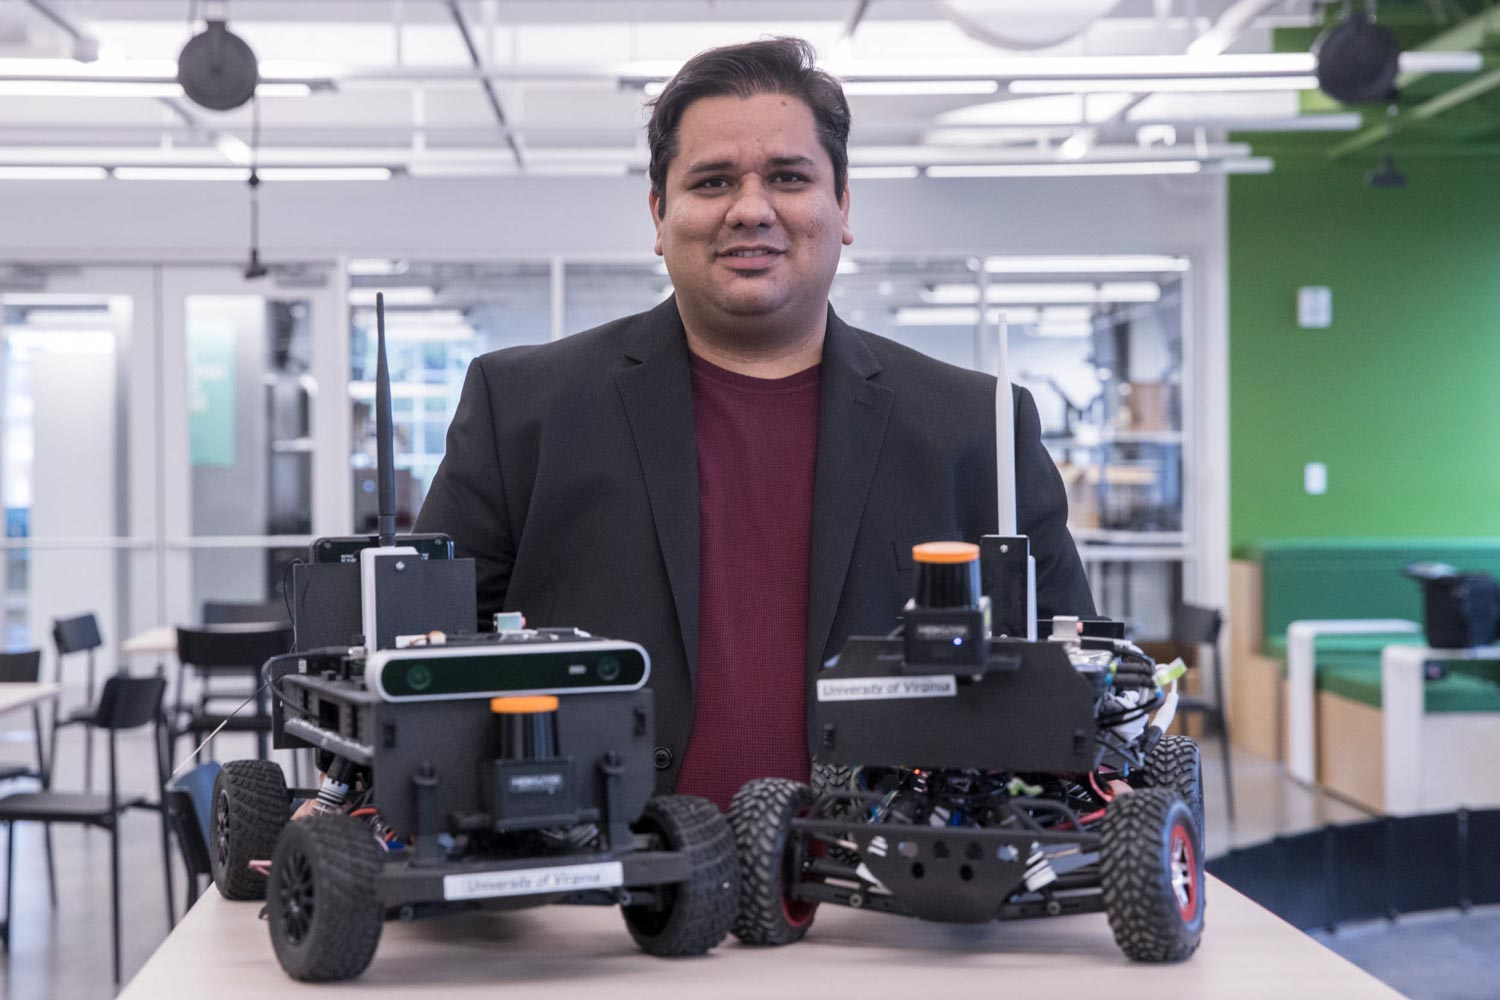 Behl is using 1/10-scale models to optimize control systems for translation to full-sized autonomous cars.